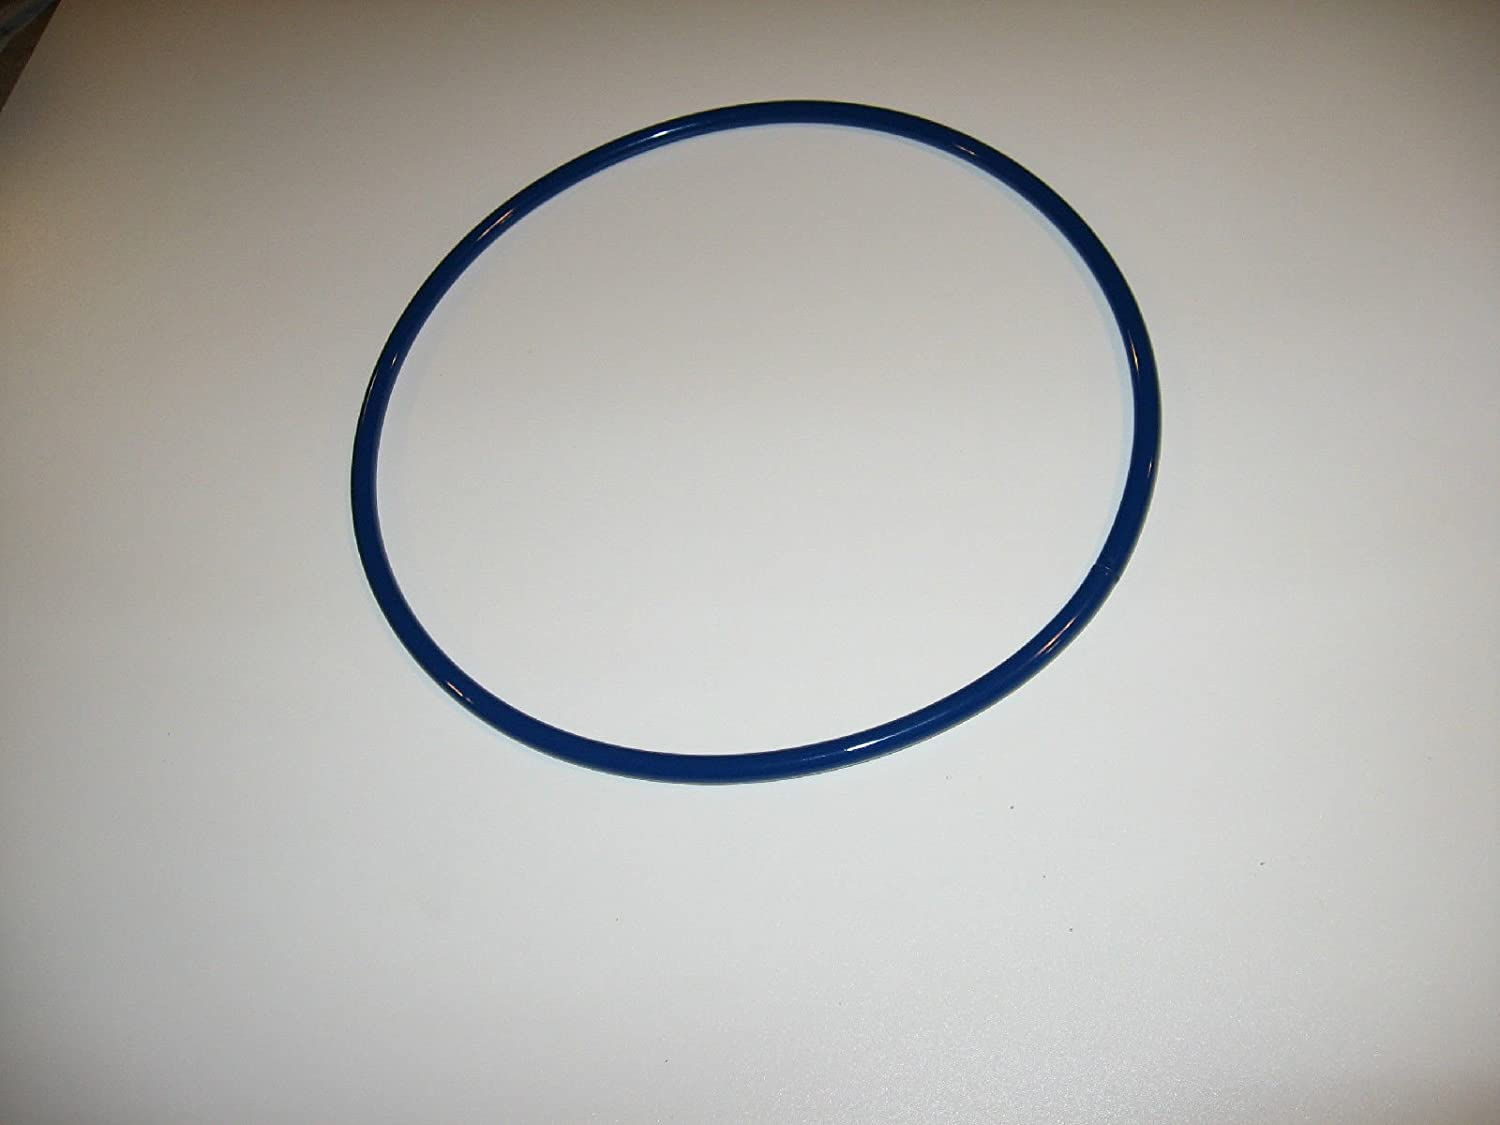 """BLUE MAX 1//4/"""" ROUND DRIVE BELT 24 1//2/"""" LONG FOR 3 WHEEL BAND SAW MADE IN USA"""